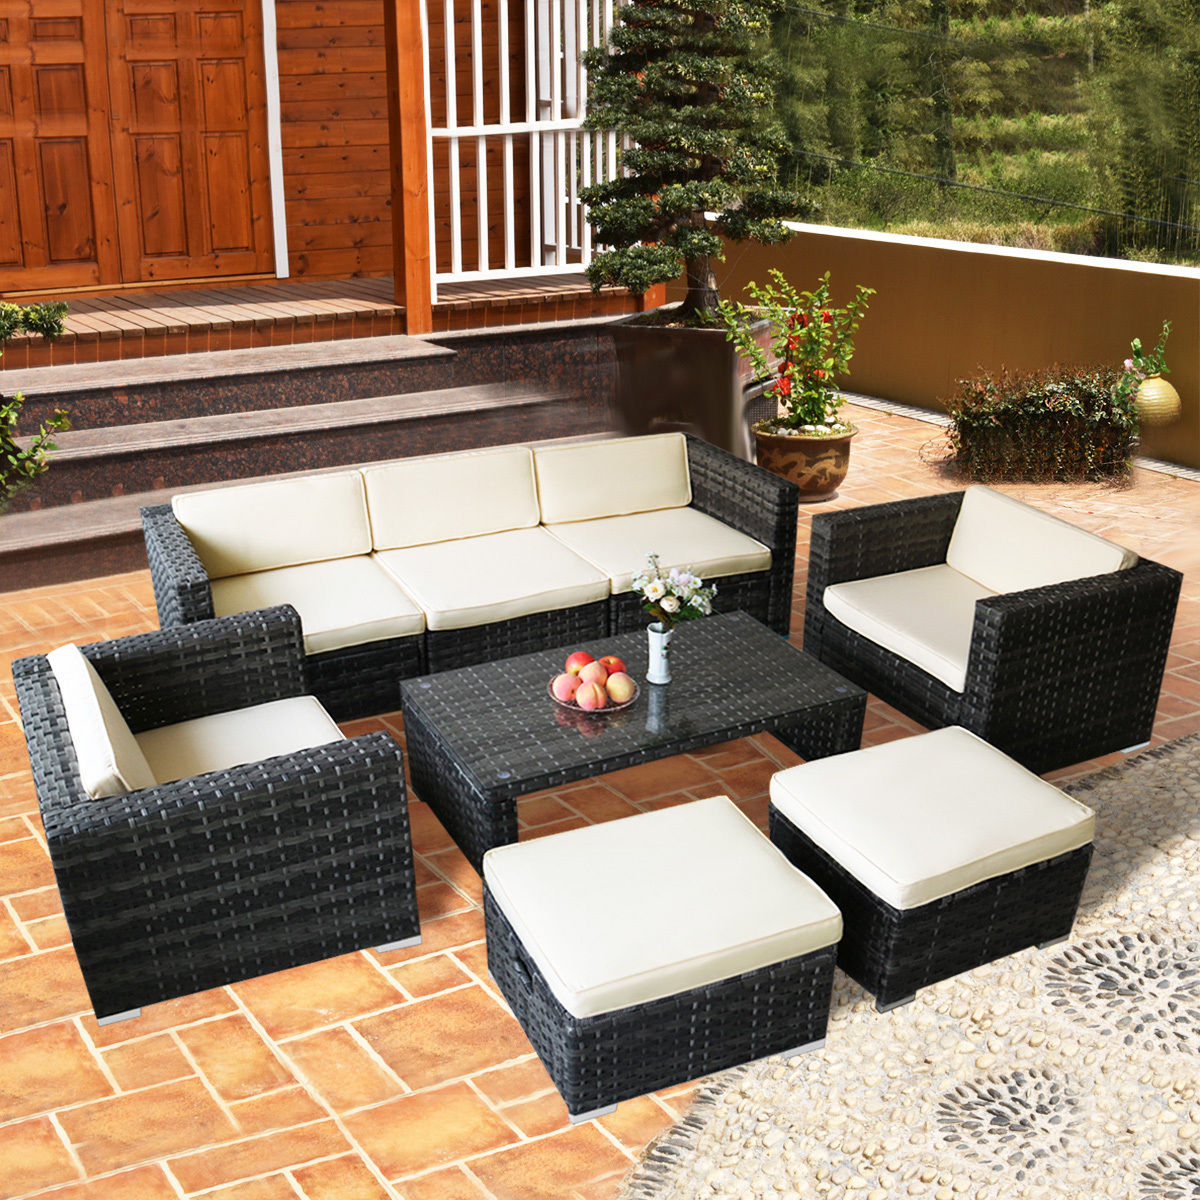 costway 8 pcs rattan wicker patio furniture set sectional cushioned ottoman sofa garden - Sectional Patio Furniture